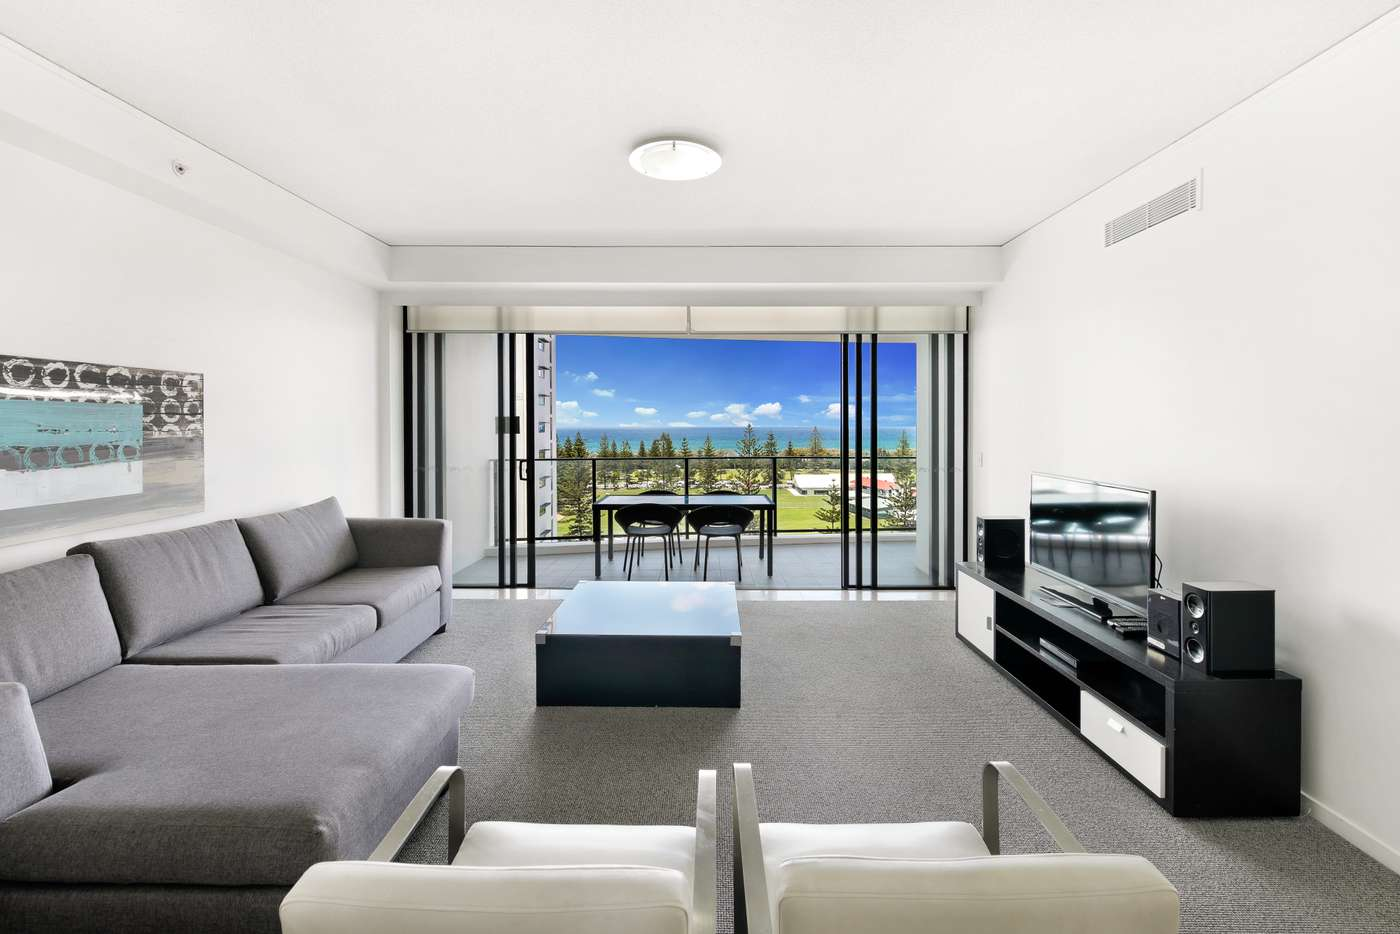 Sixth view of Homely apartment listing, 1106 'Mantra Sierra Grand' 22 Surf Parade, Broadbeach QLD 4218